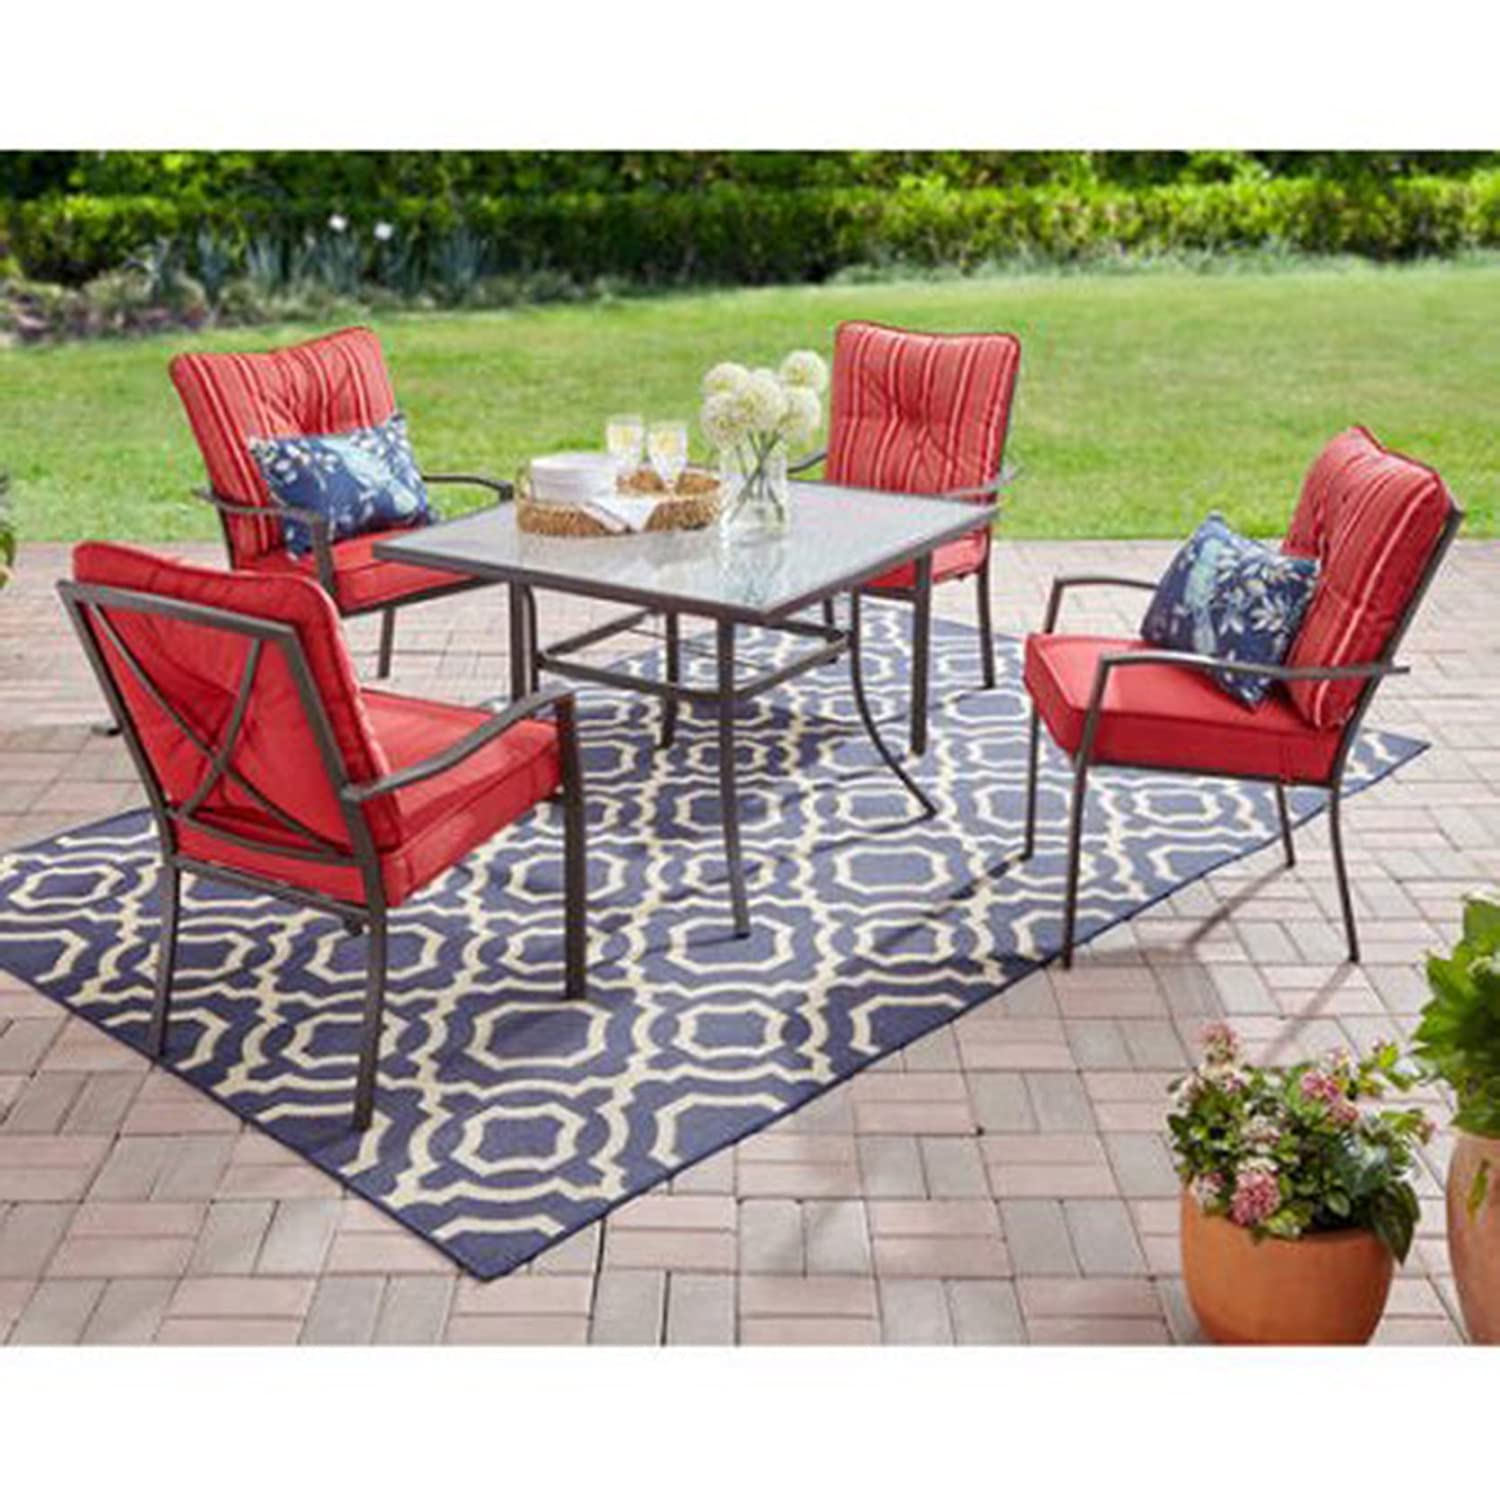 Amazon com mainstays forest hills 5 piece dining set with cushioned chairs outdoor furniture red garden outdoor